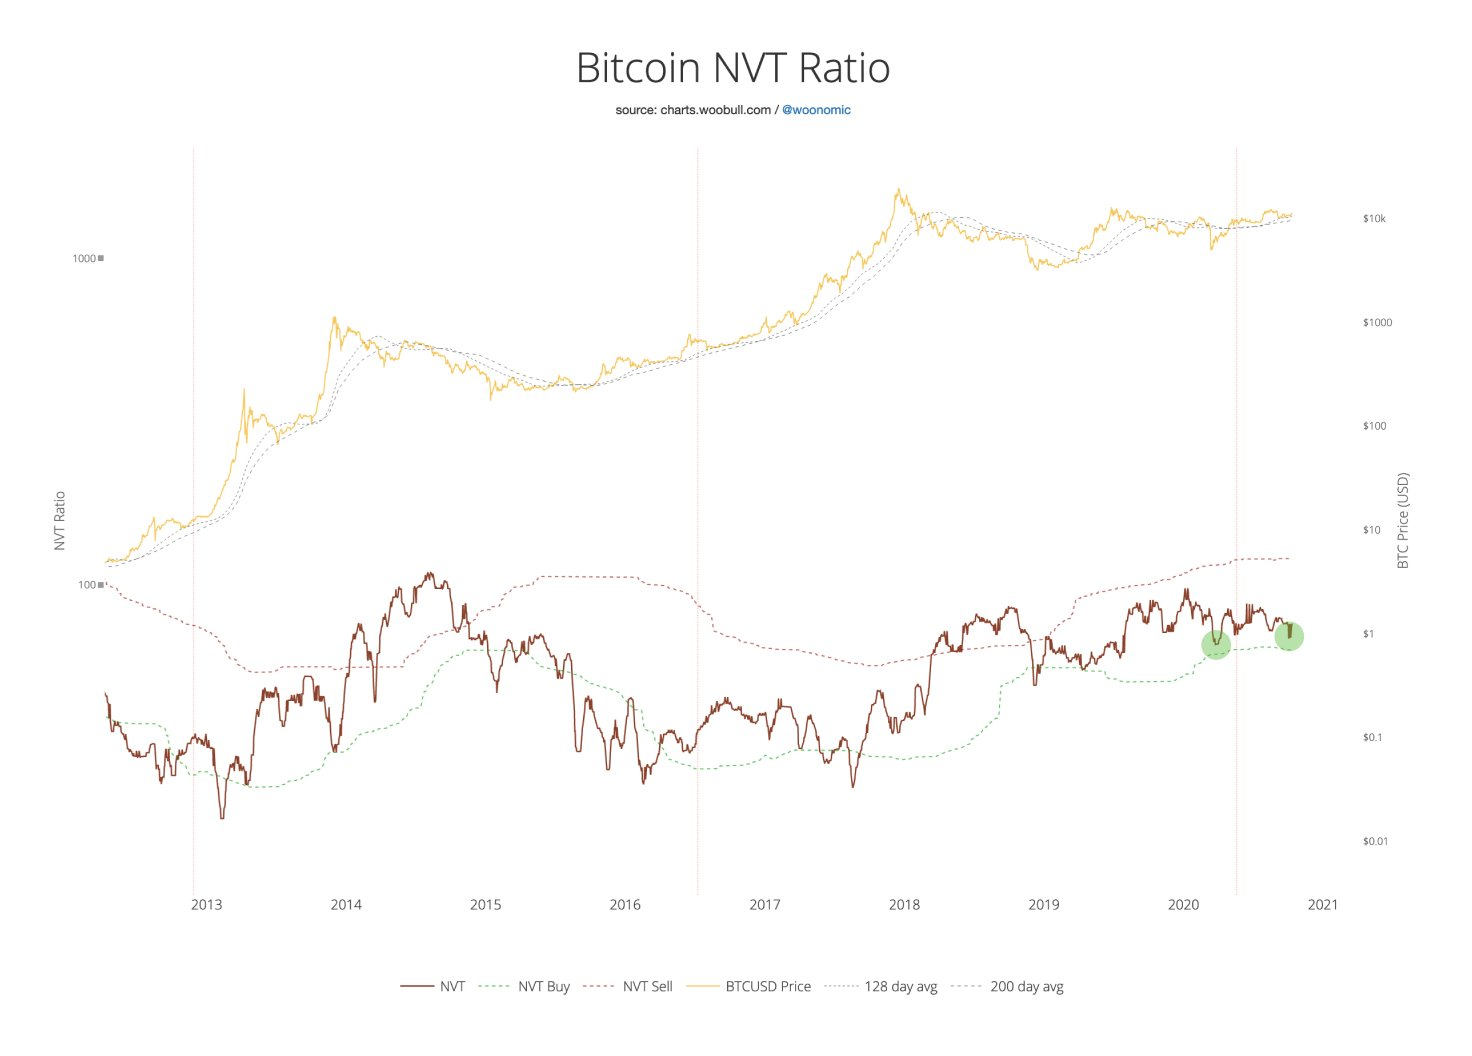 Bitcoin NVT (Transaction volume vs price)